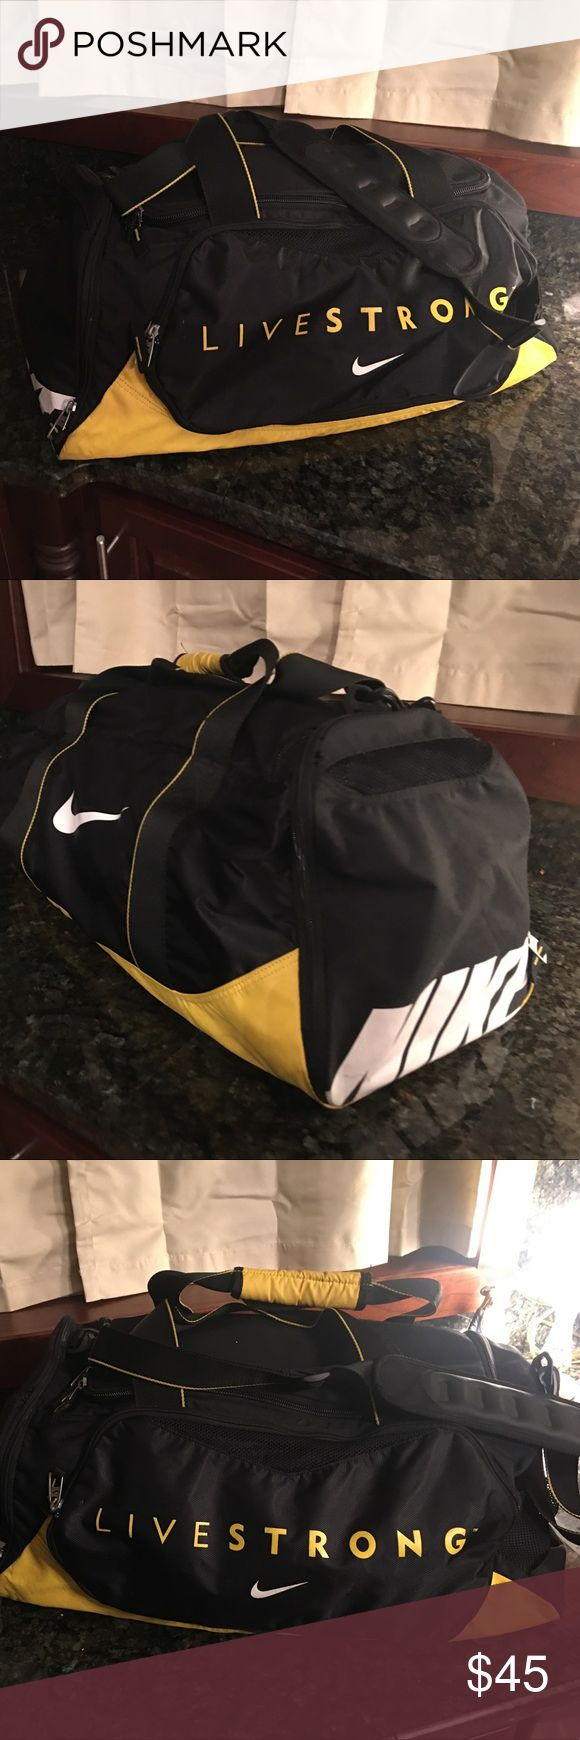 Nike Livestrong rare duffle bag Nike Livestrong duffle bag gently used.... very rare....selling new on eBay for $279....,reasonable offers considered Nike Accessories